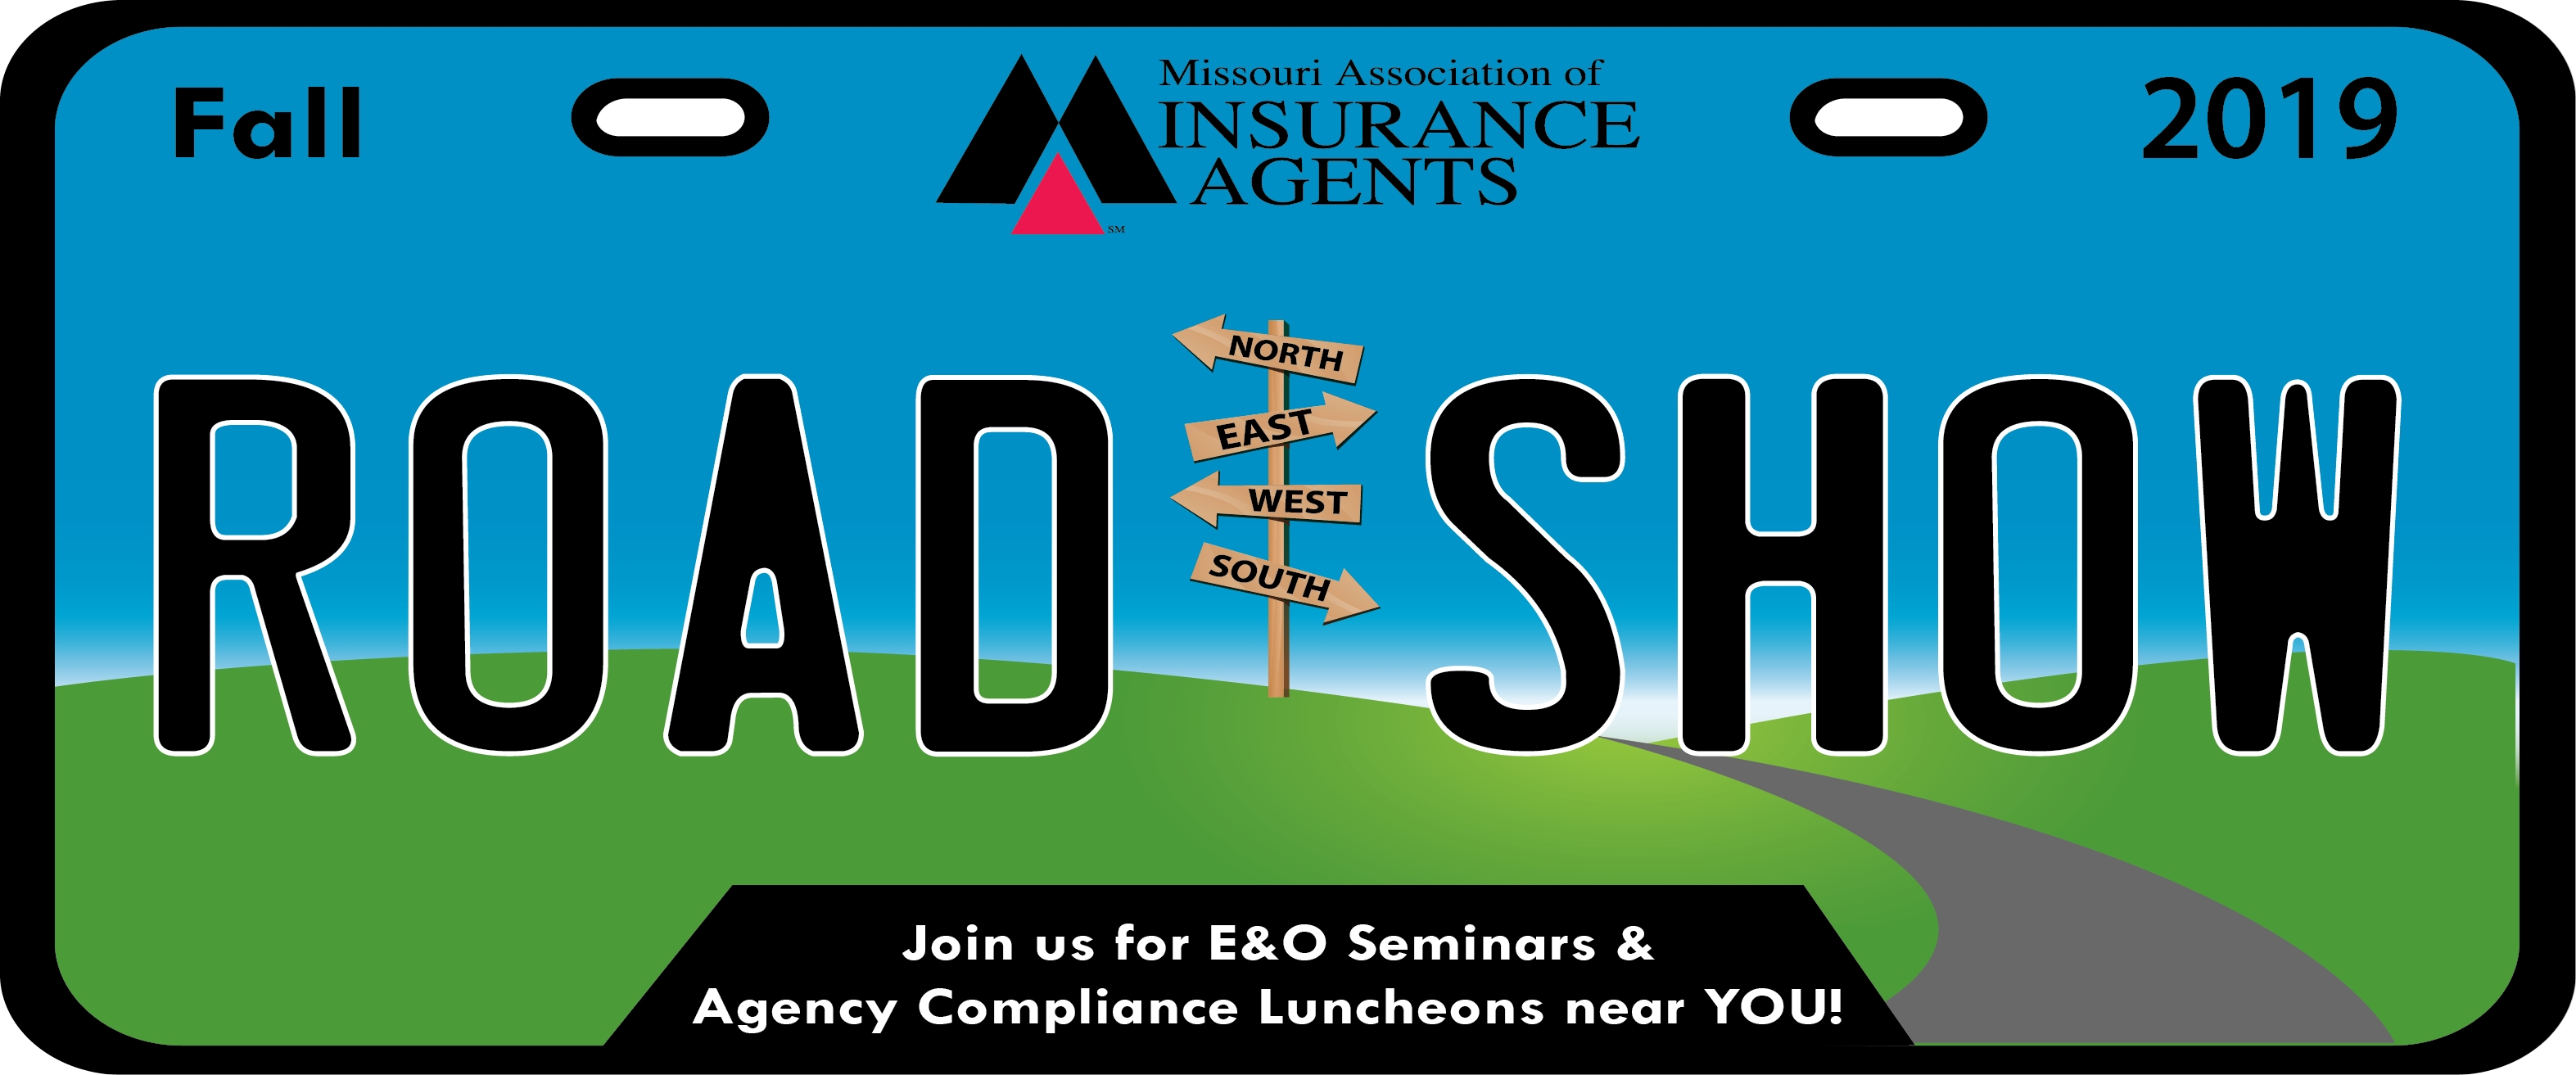 E&O Seminar & Agency Compliance Luncheon